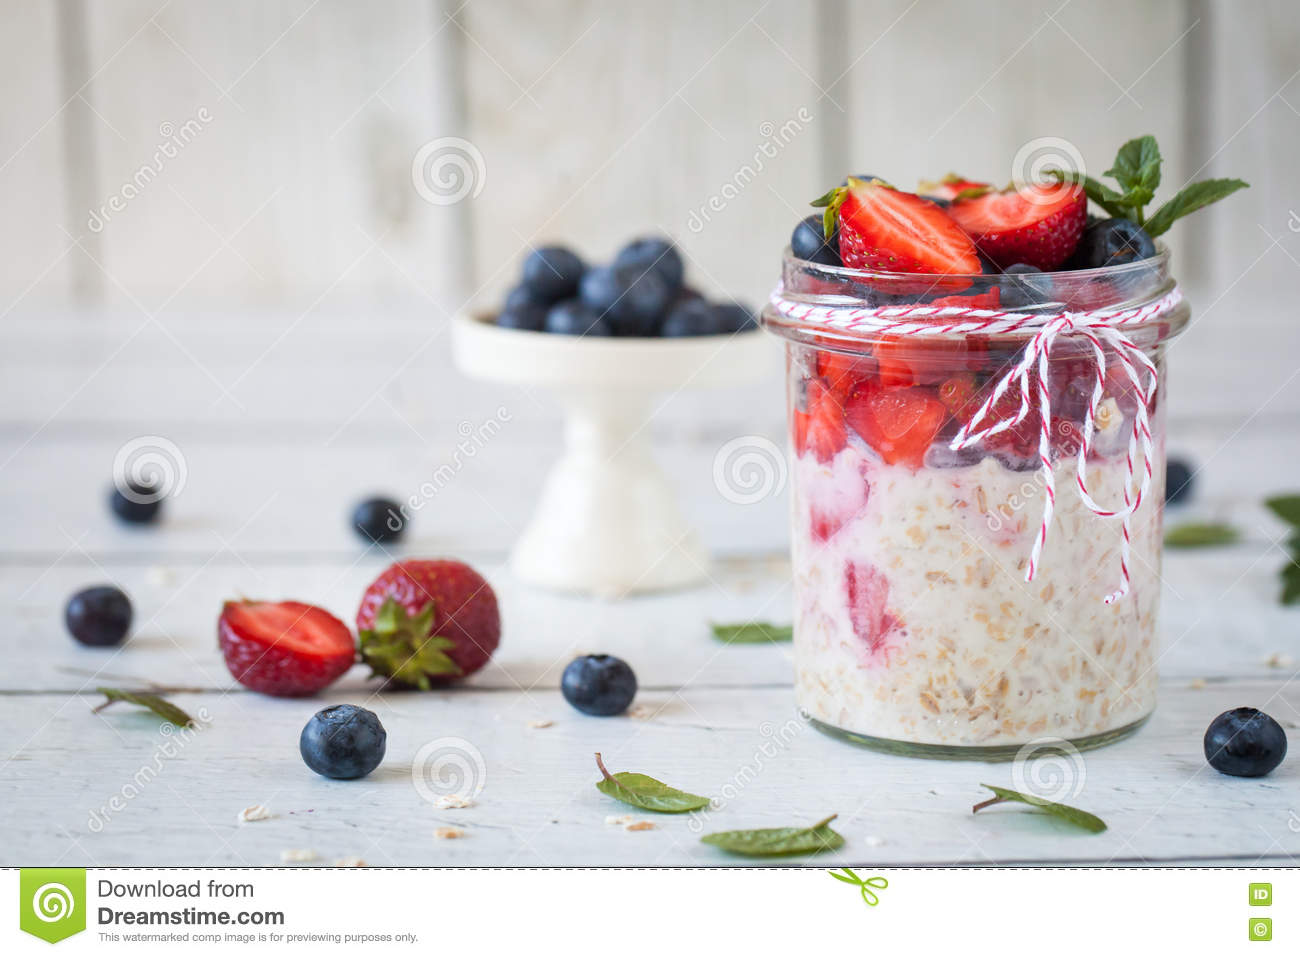 Healthy breakfast: overnight oats with fresh strawberries